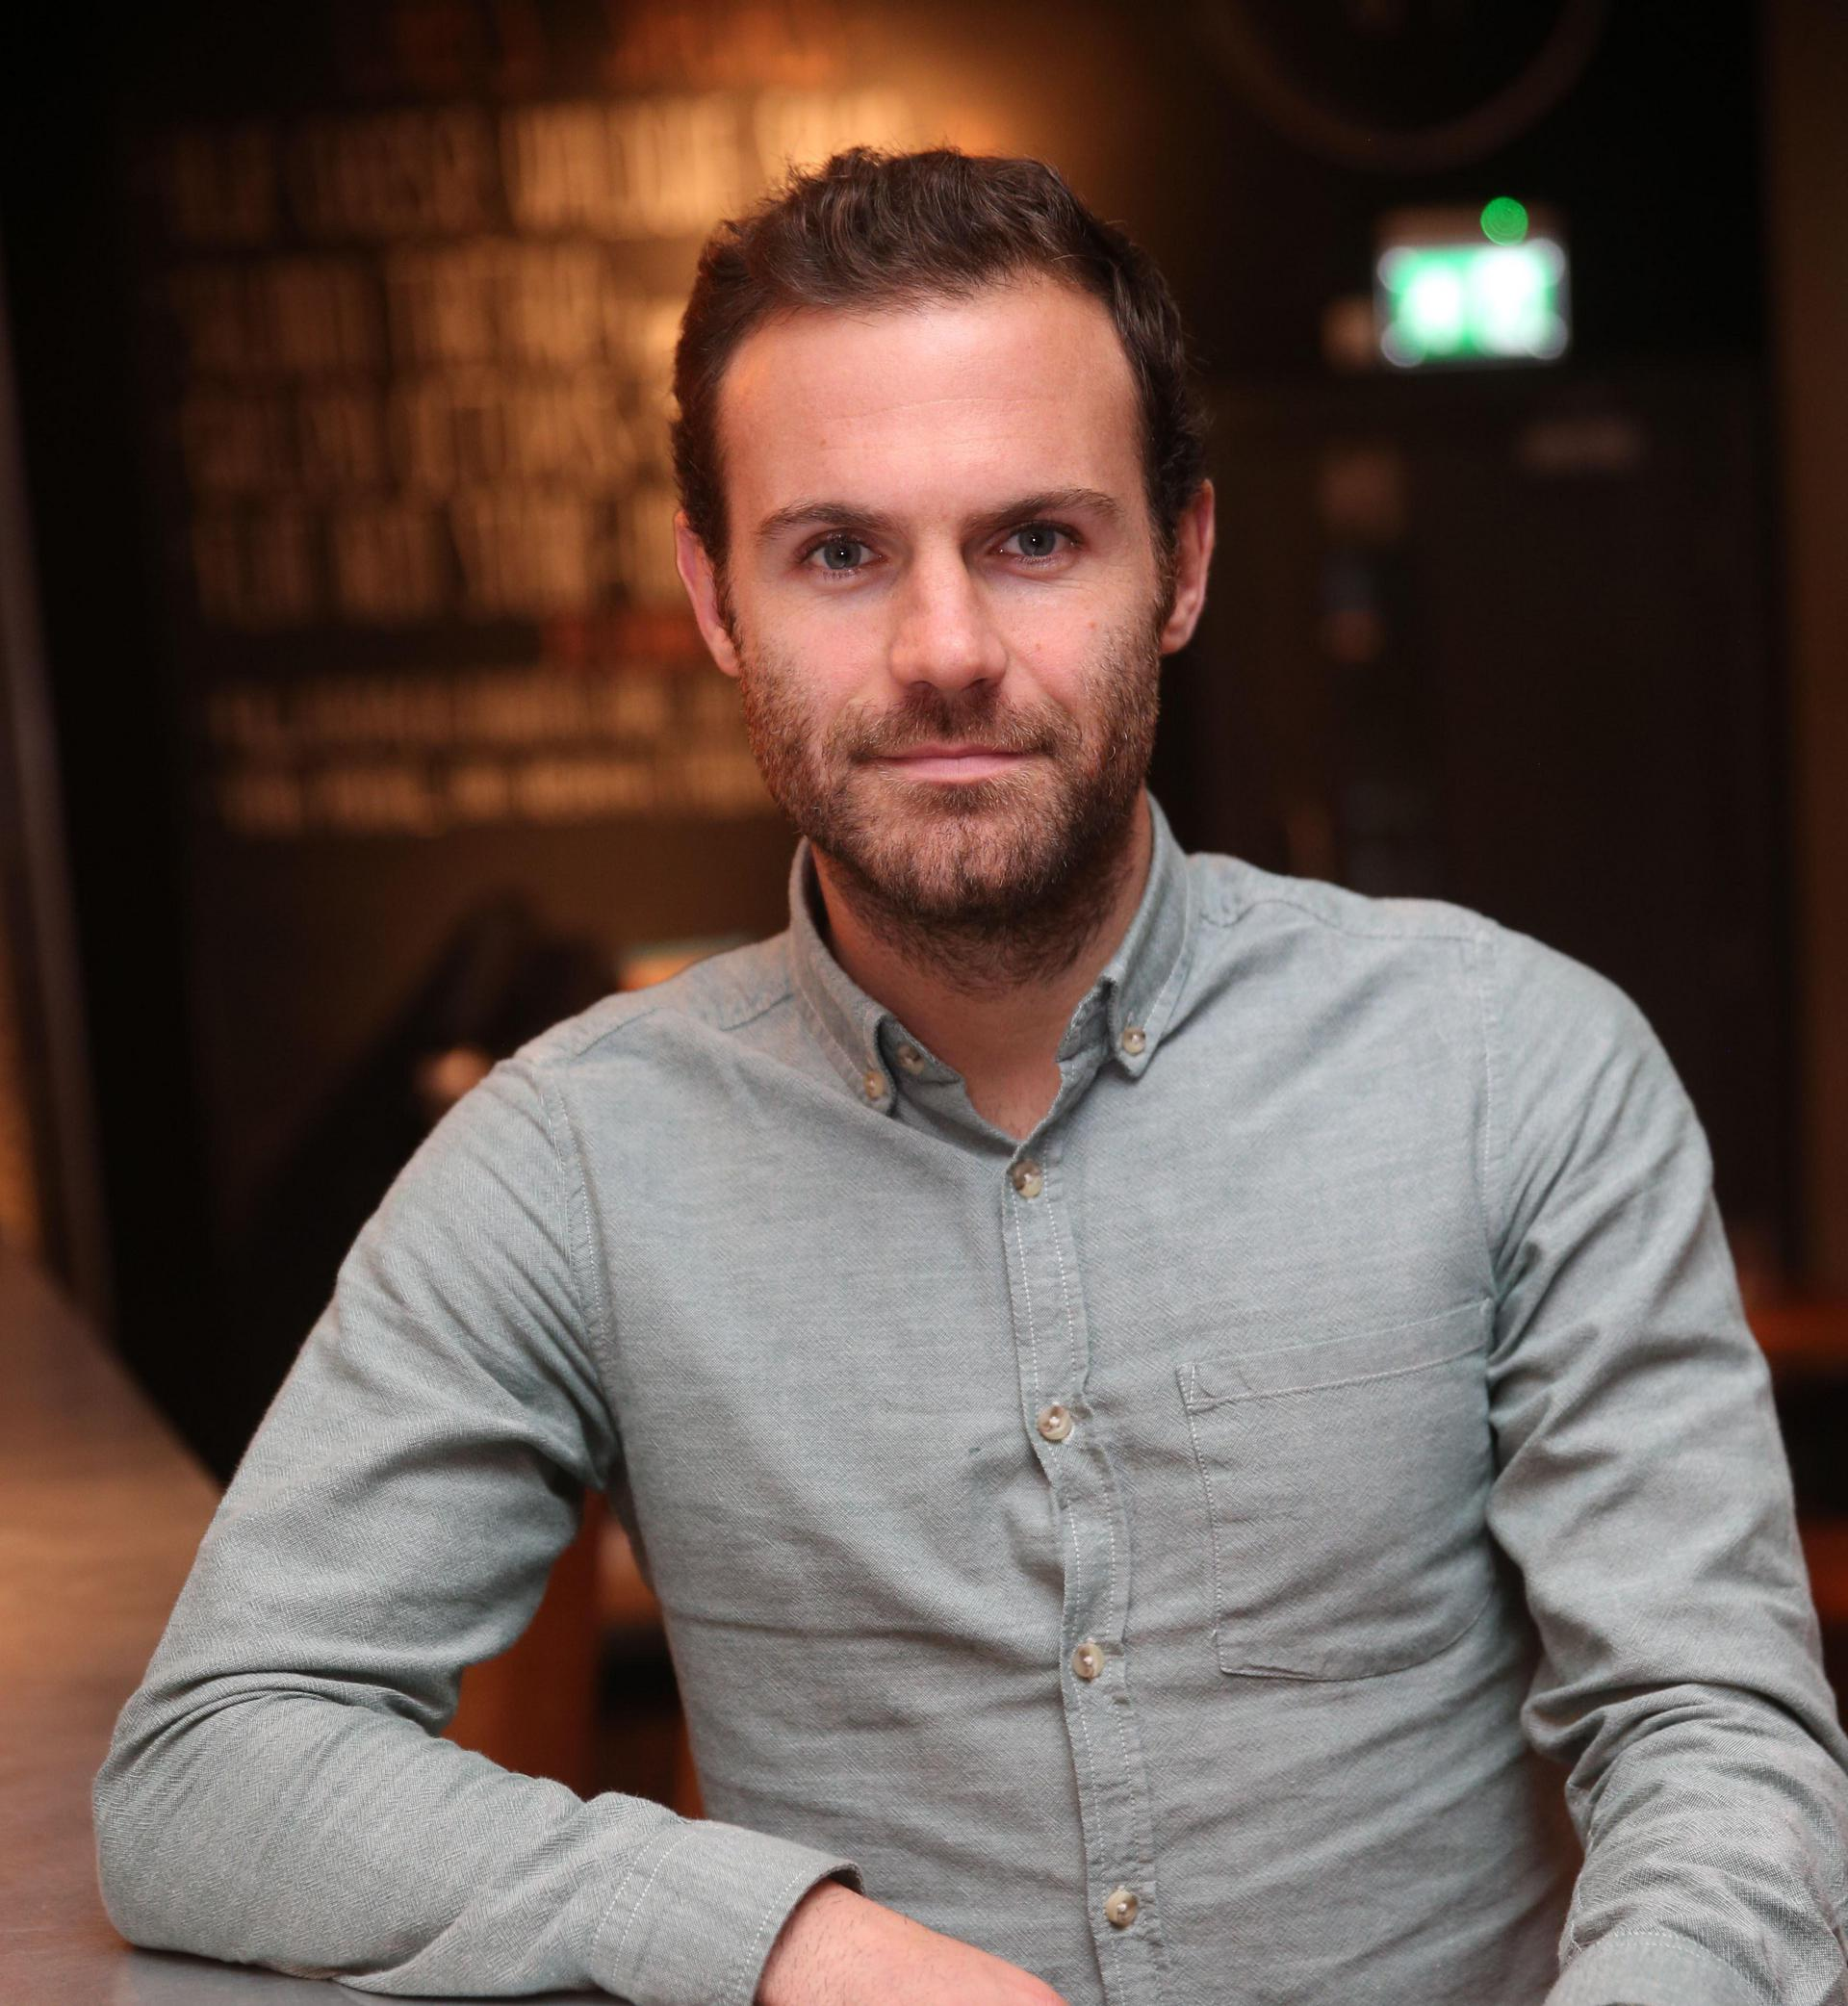 Juan Mata at his restaurant in Manchester.